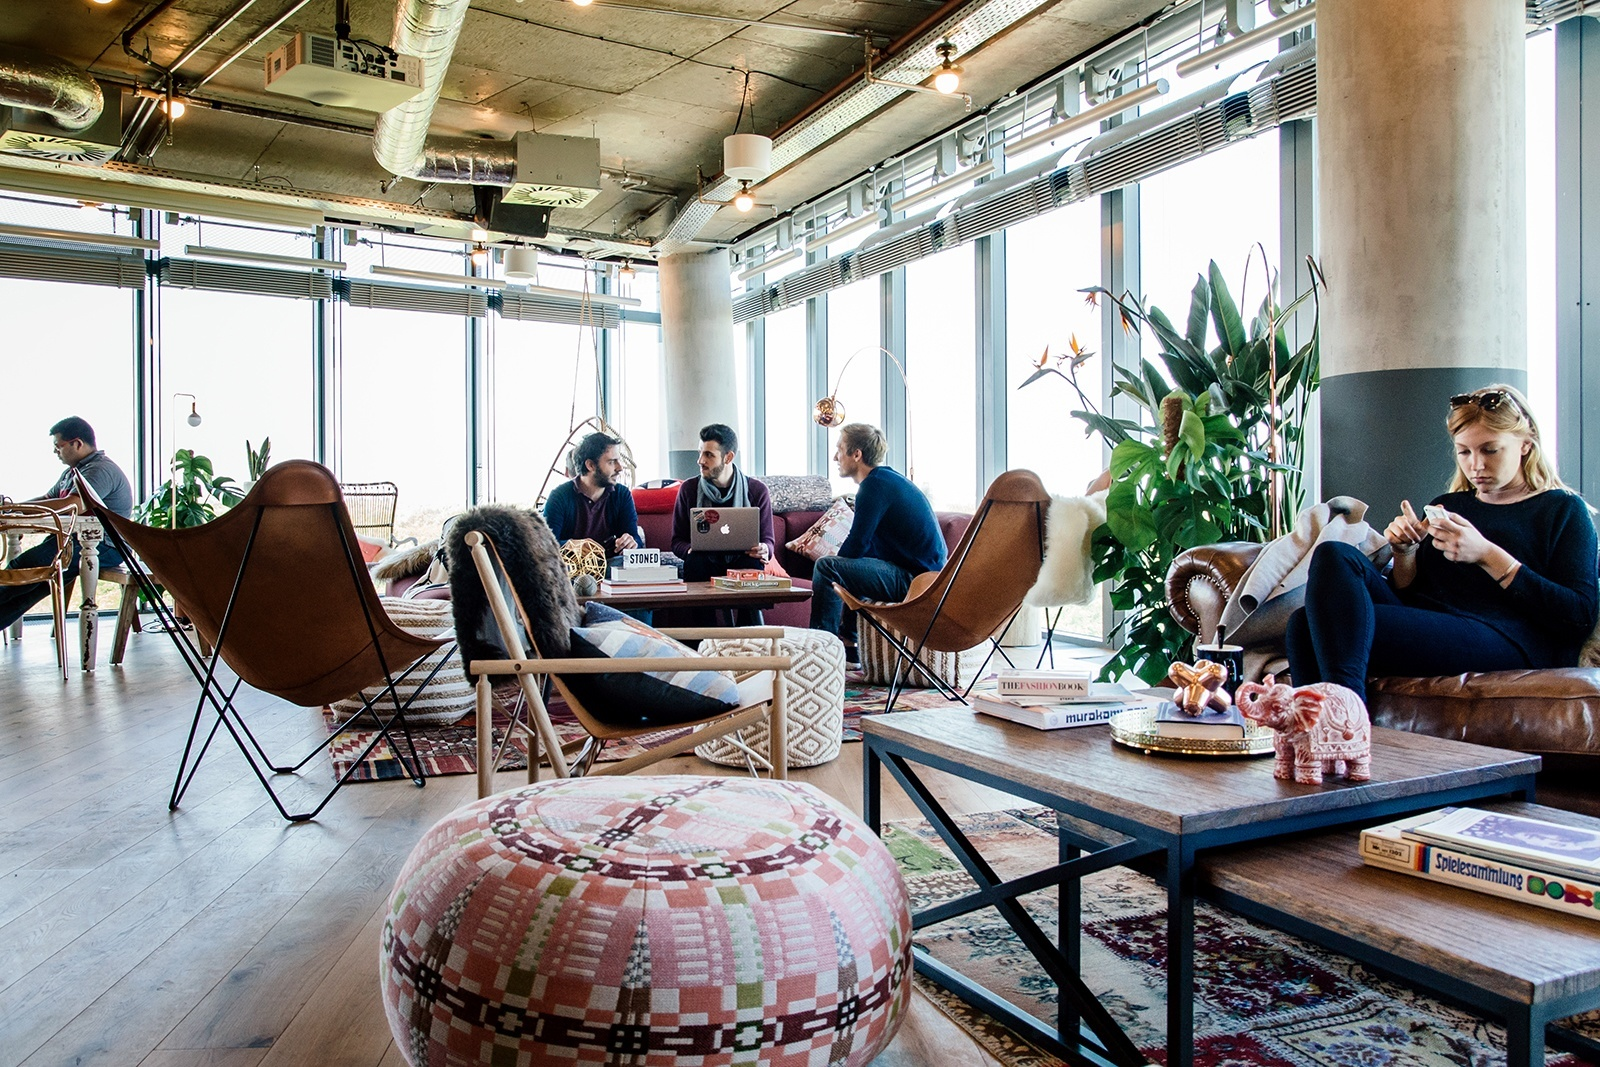 a tour of wework s new coworking space in berlin officelovin 39. Black Bedroom Furniture Sets. Home Design Ideas